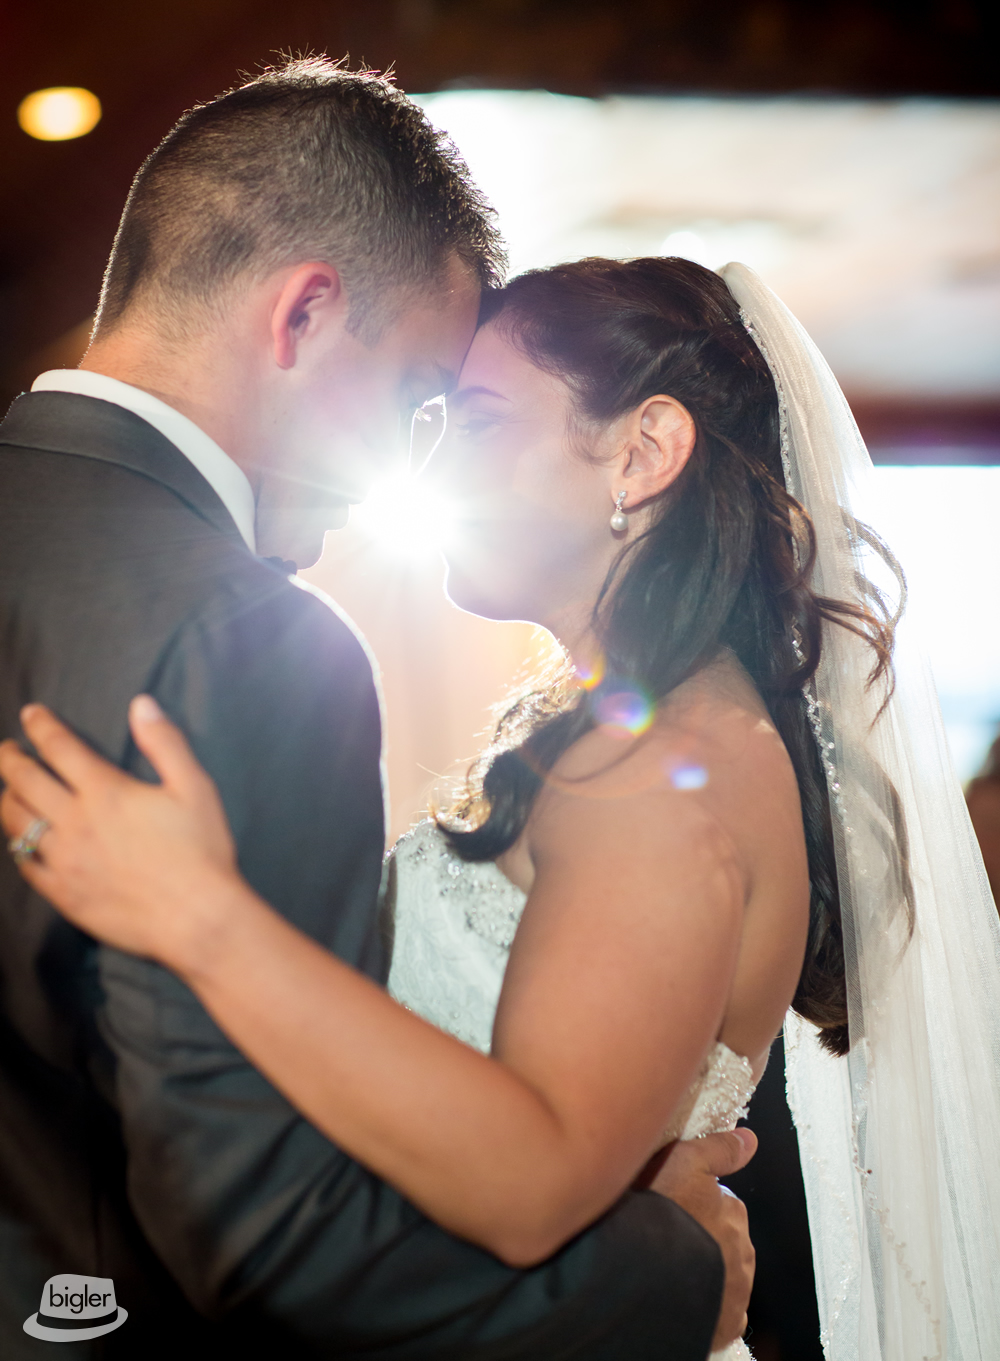 20150815_-_28b_-_Whiteface_Lodge_Wedding